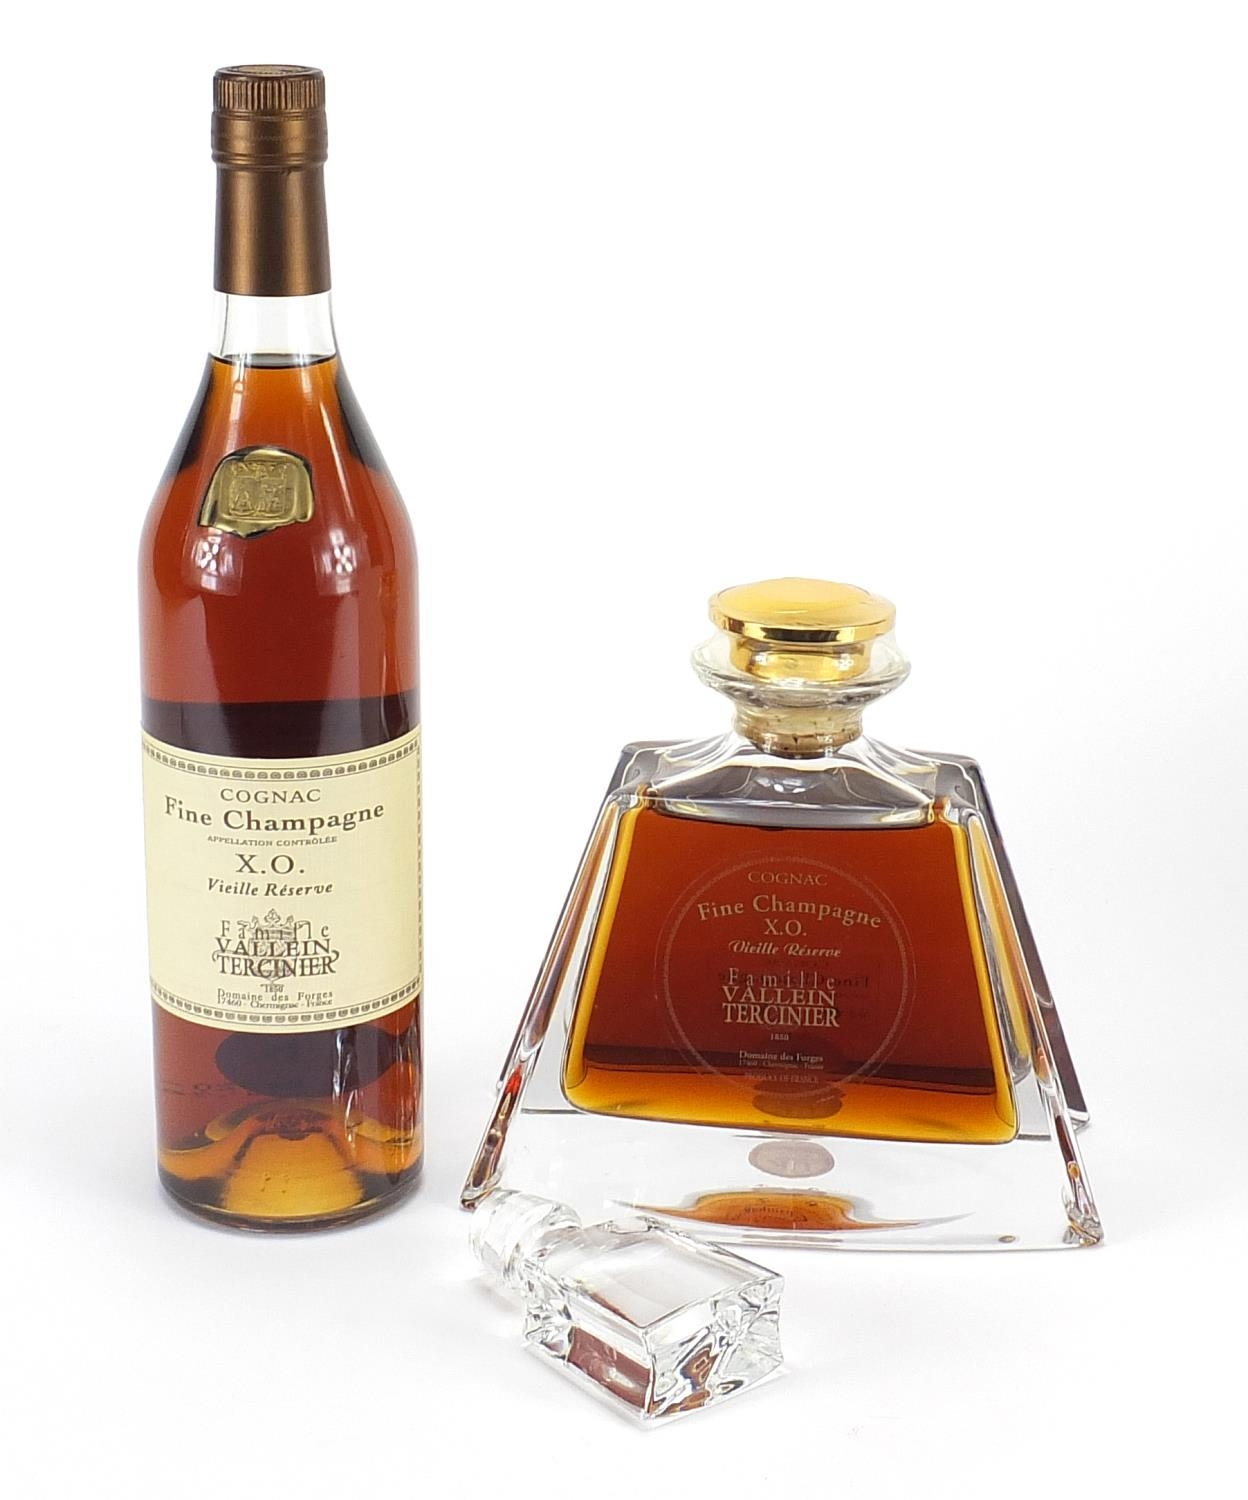 Two bottles of Famille Vallein Tercinier XO Fine Campagne cognac including one with decanter - Image 2 of 3